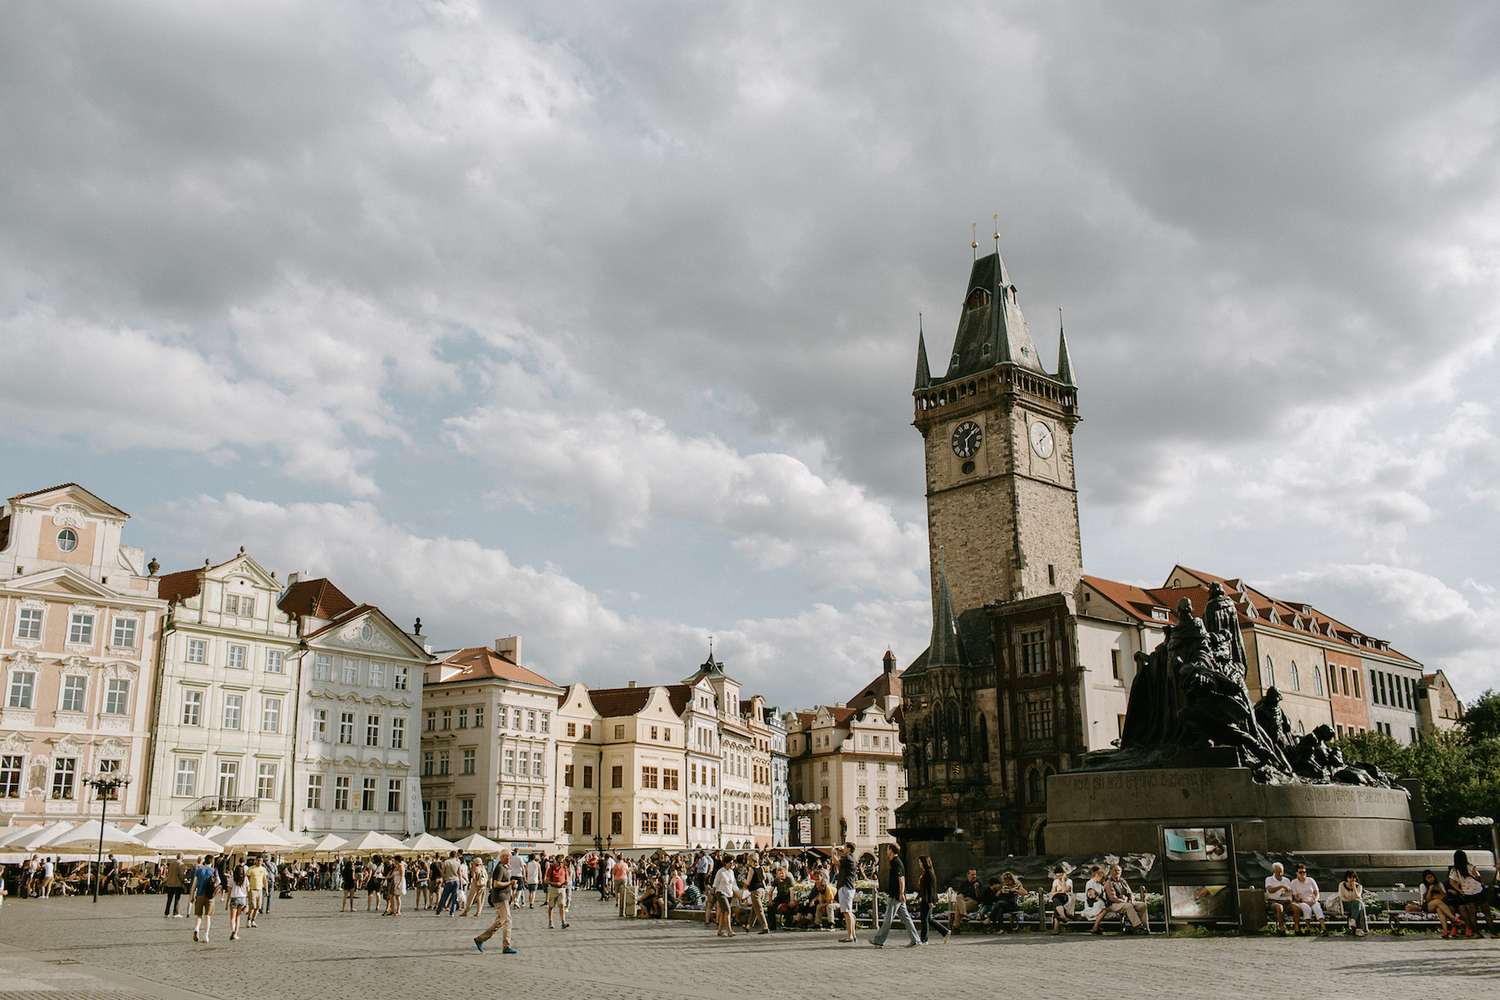 Common mistakes when traveling to Prague, a.k.a.